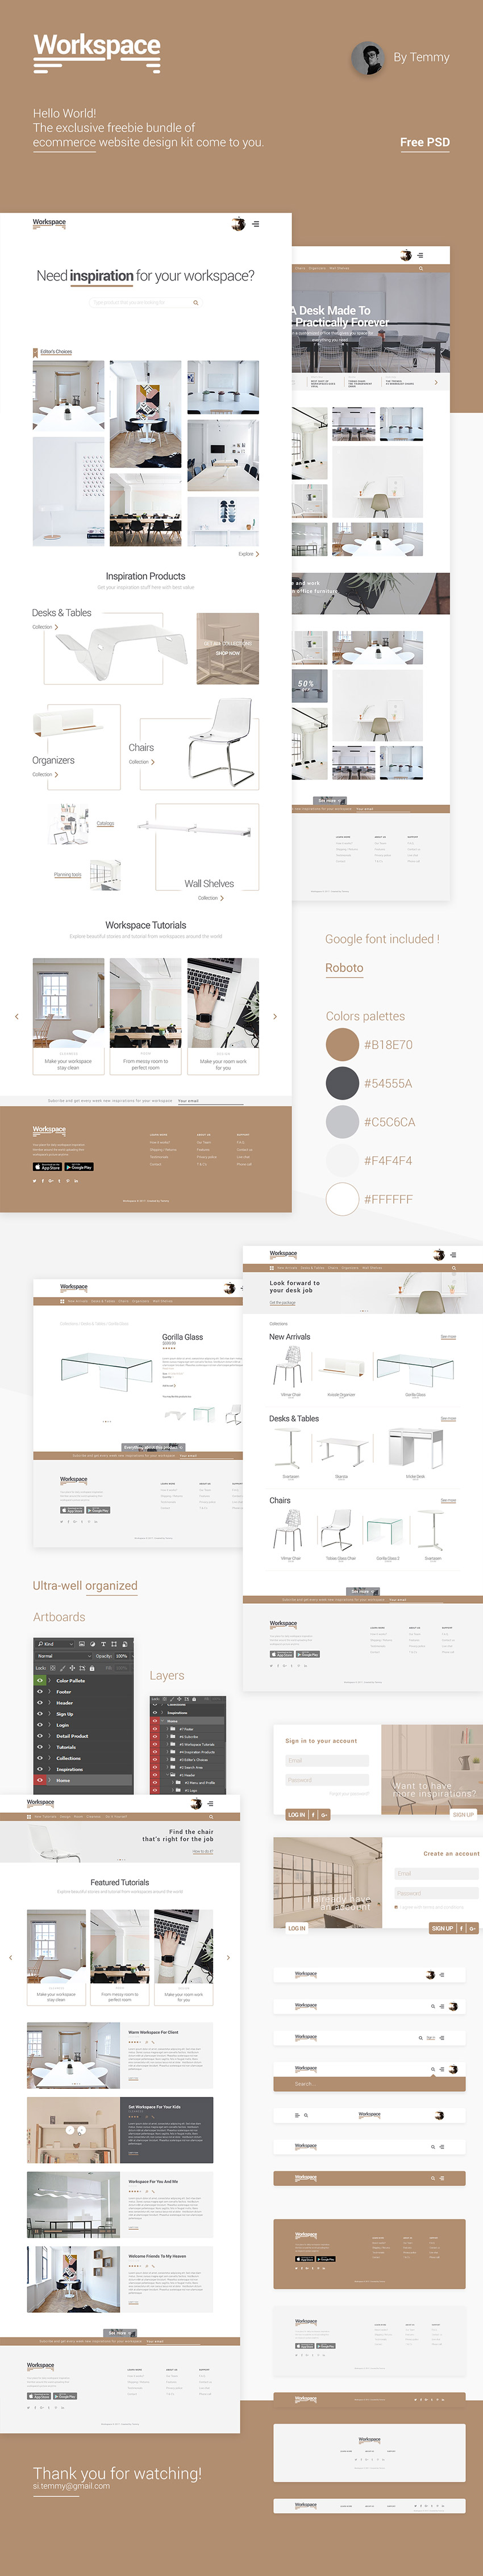 Workspace Web Template for Photoshop - Brown Free UI Kit